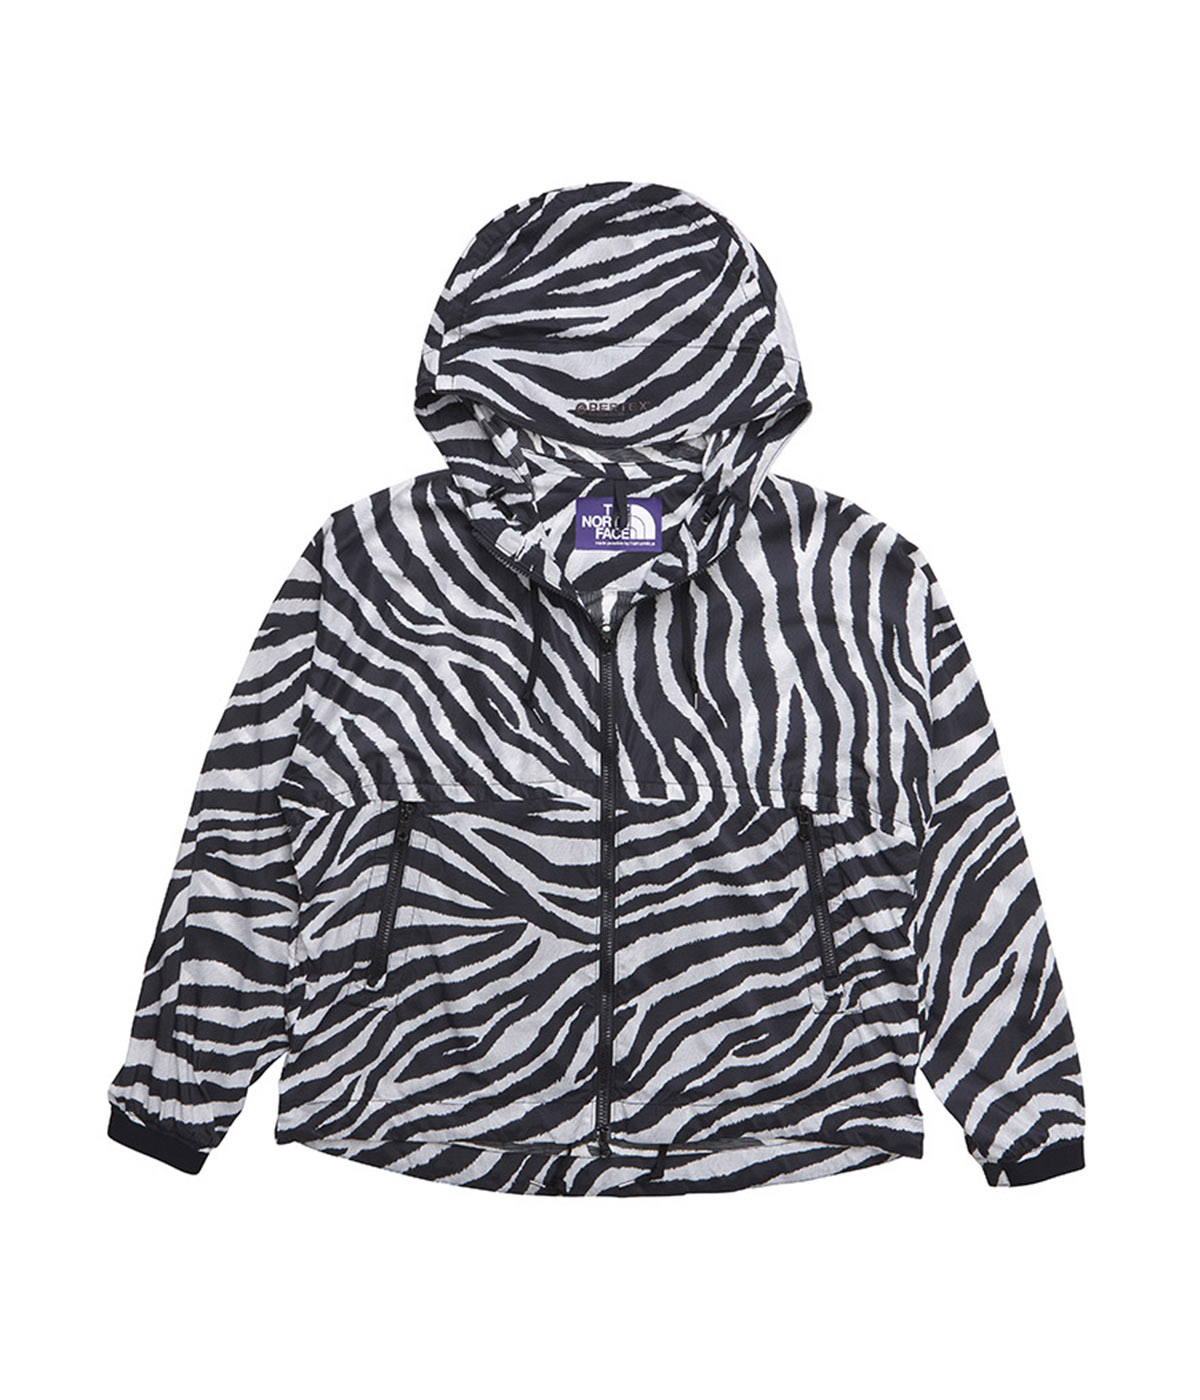 【予約】PERTEX_ Zebra Print Mountain Wind Parka